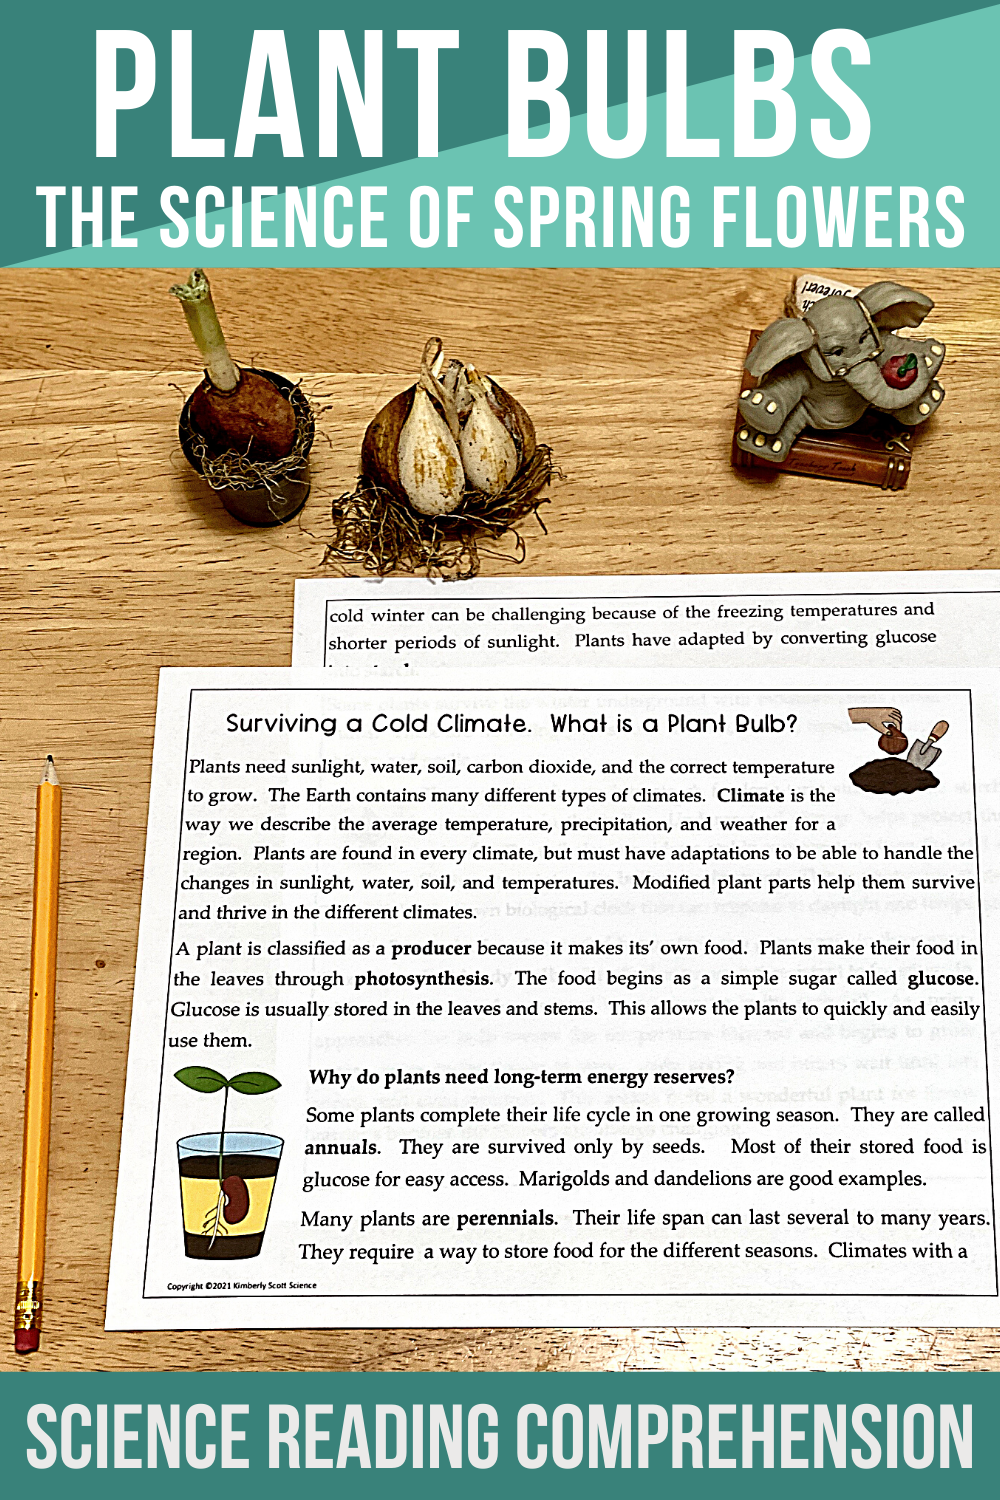 Science Reading Comprehension Plant Bulbs The Science Of Spring Flowers In 2021 Science Reading Comprehension Spring Science Lessons Science Reading [ 1500 x 1000 Pixel ]